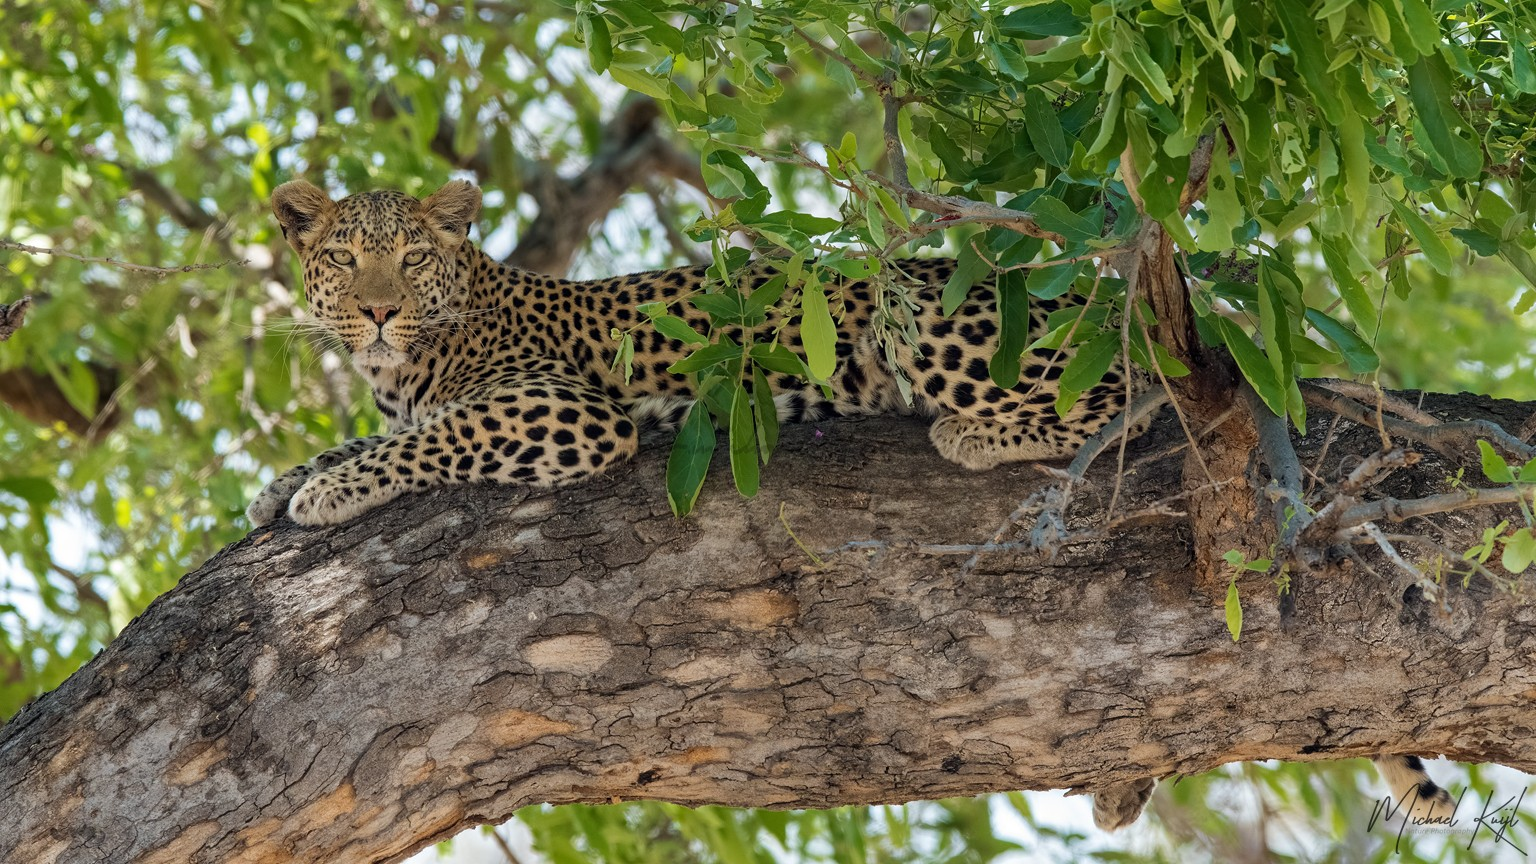 Leopard in the tree, botswana, self-drive, nikonD850, Africa, Wildlife, Bushdriving